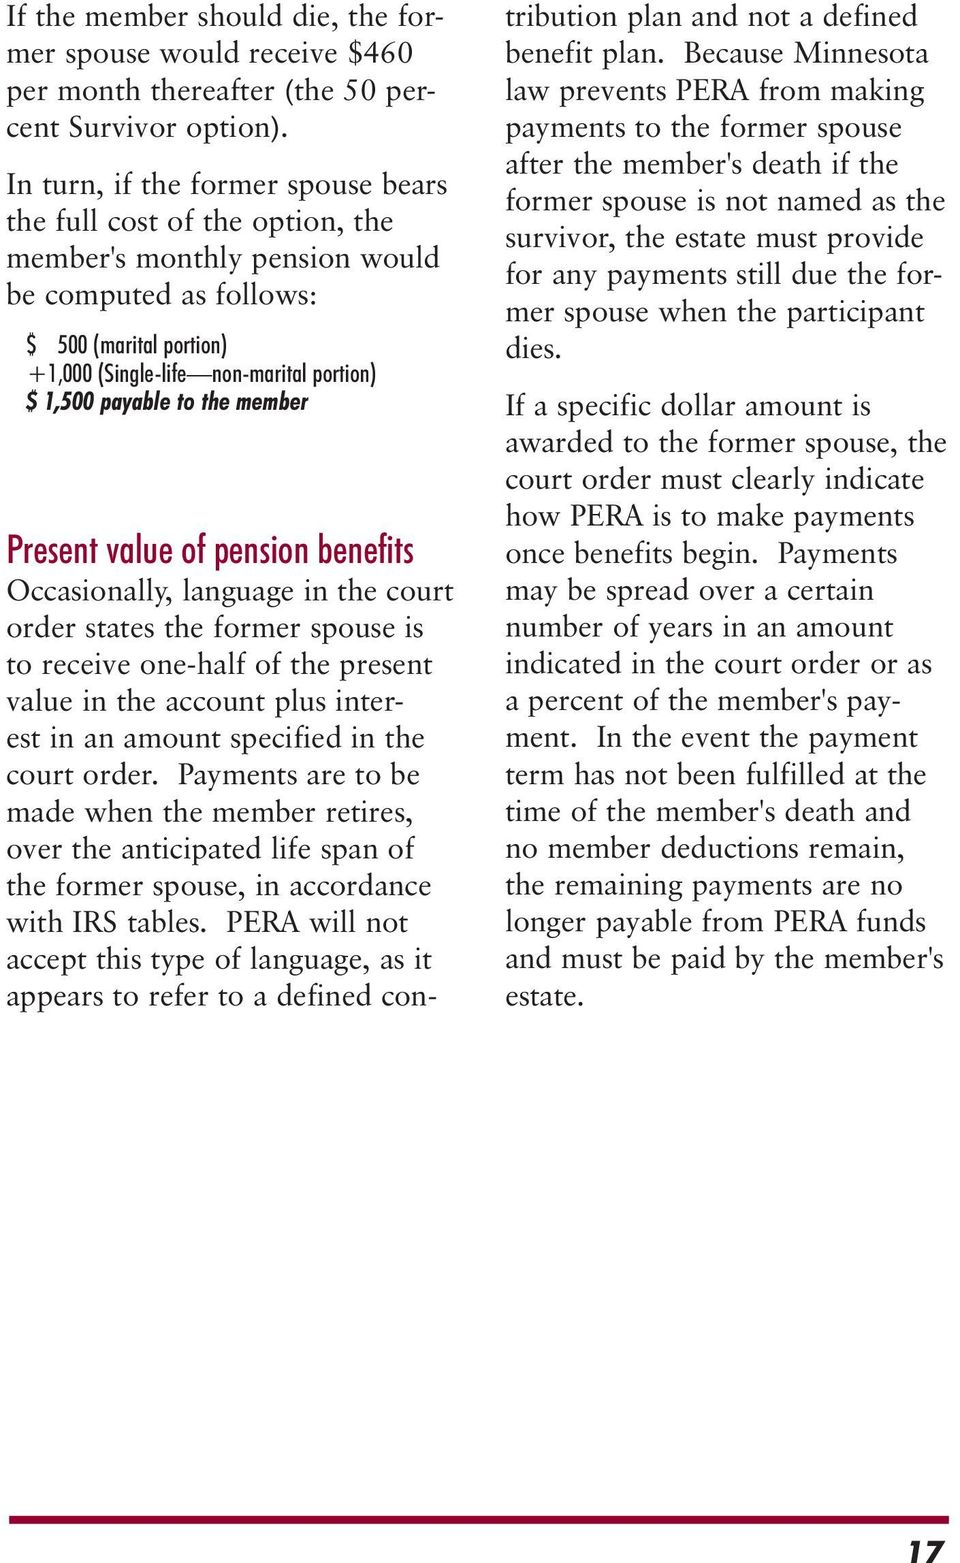 payable to the member Present value of pension benefits Occasionally, language in the court order states the former spouse is to receive one-half of the present value in the account plus interest in